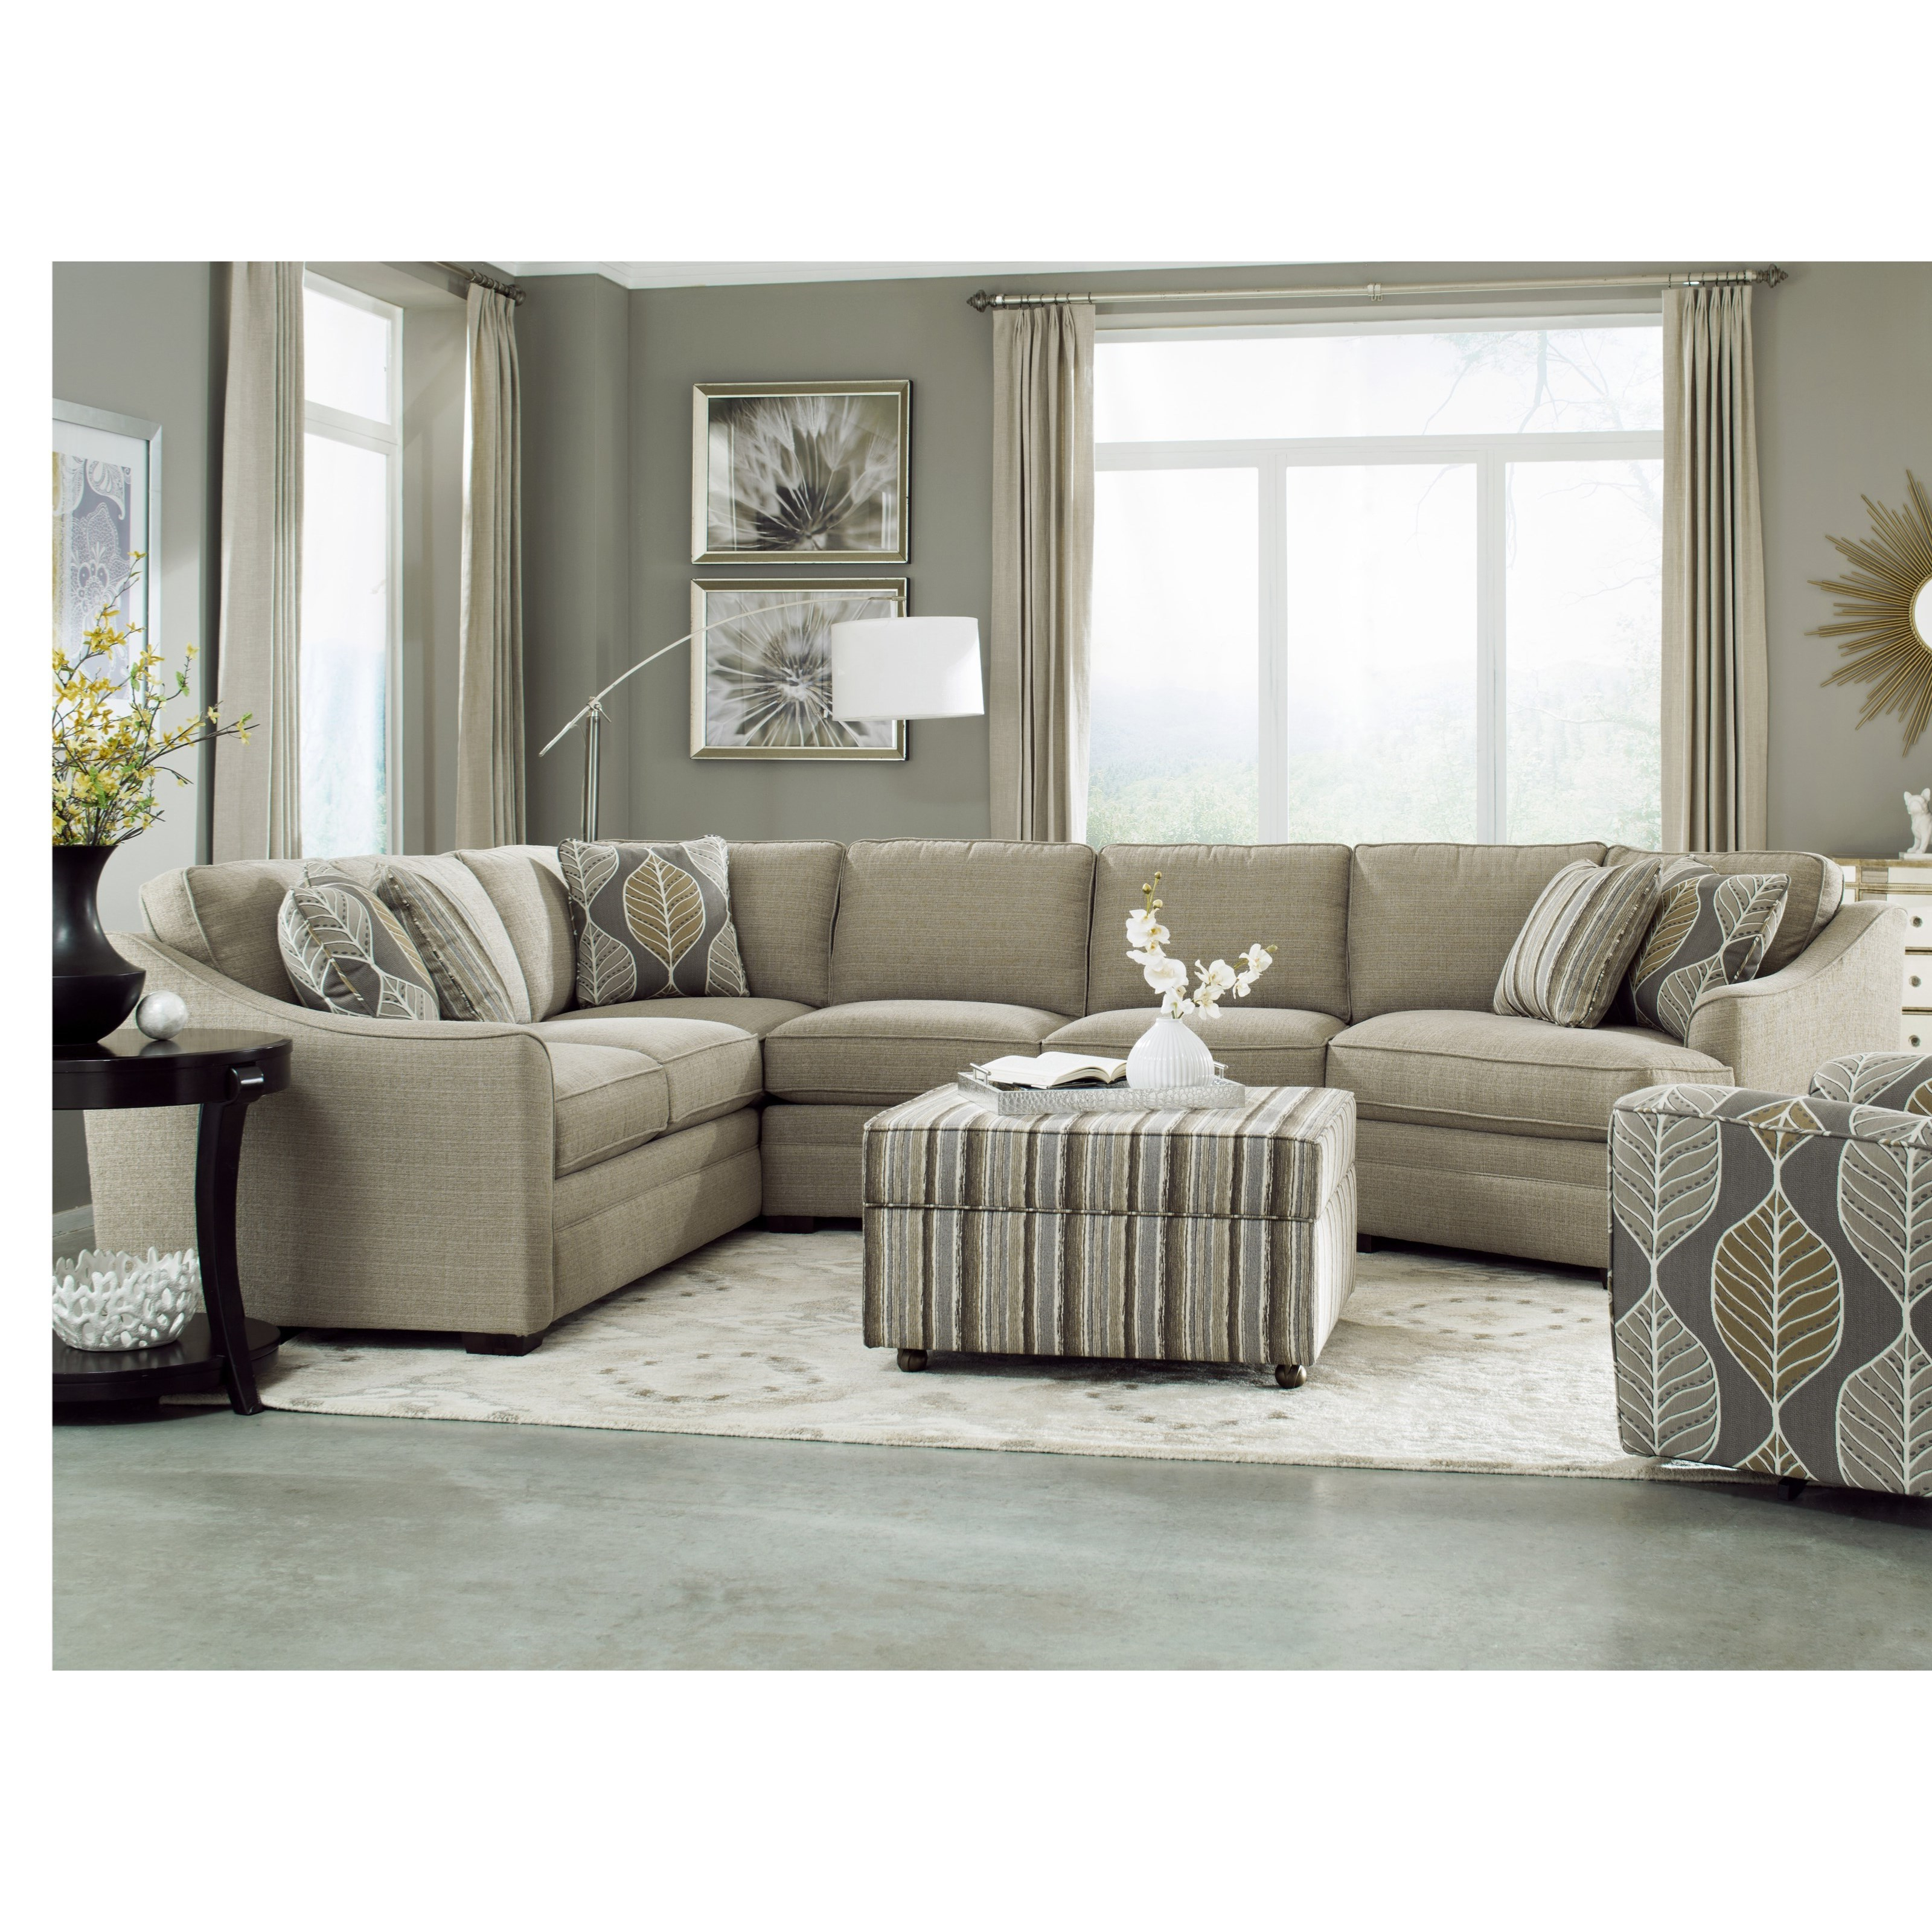 Preferred Avery 2 Piece Sectionals With Laf Armless Chaise Inside Hickory Craft F9 Custom Collection <B>Customizable</b> 3 Piece (View 16 of 20)